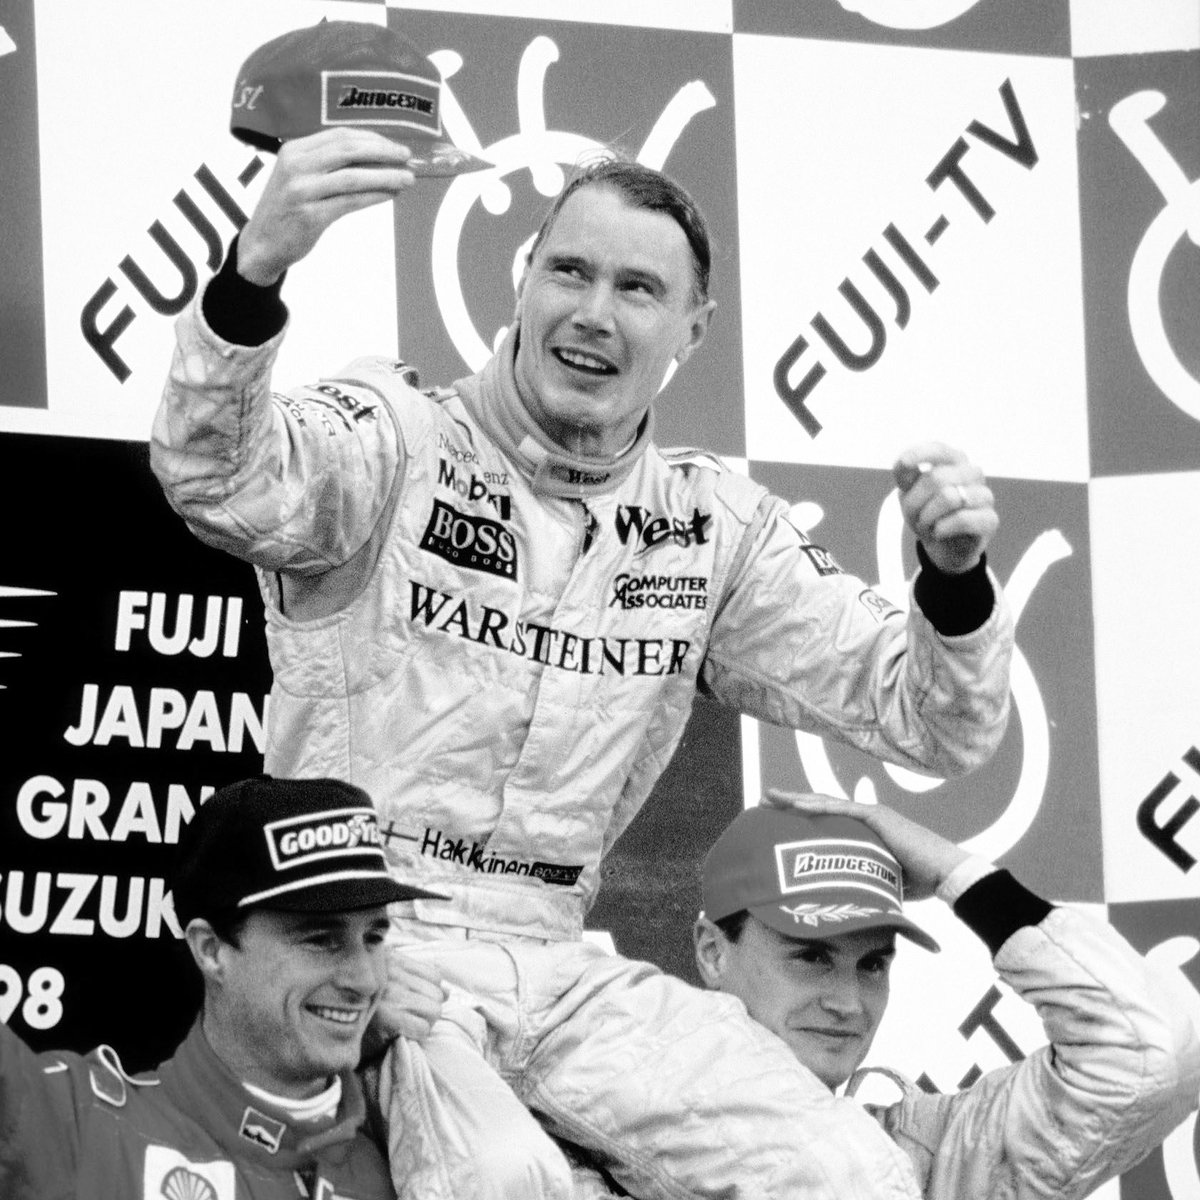 Mika Hakkinen 🇫🇮 @f1mikahakkinen after clinching the 1️⃣9️⃣9️⃣8️⃣ #f1driverschampionship at the #japanesegp 🇯🇵 at Suzuka Circuit @suzukacircuit_official sharing the podium with Eddie Irvine 🇬🇧 @eddieirvineofficial and David Coulthard 🇬🇧 @davidcoulthardf1